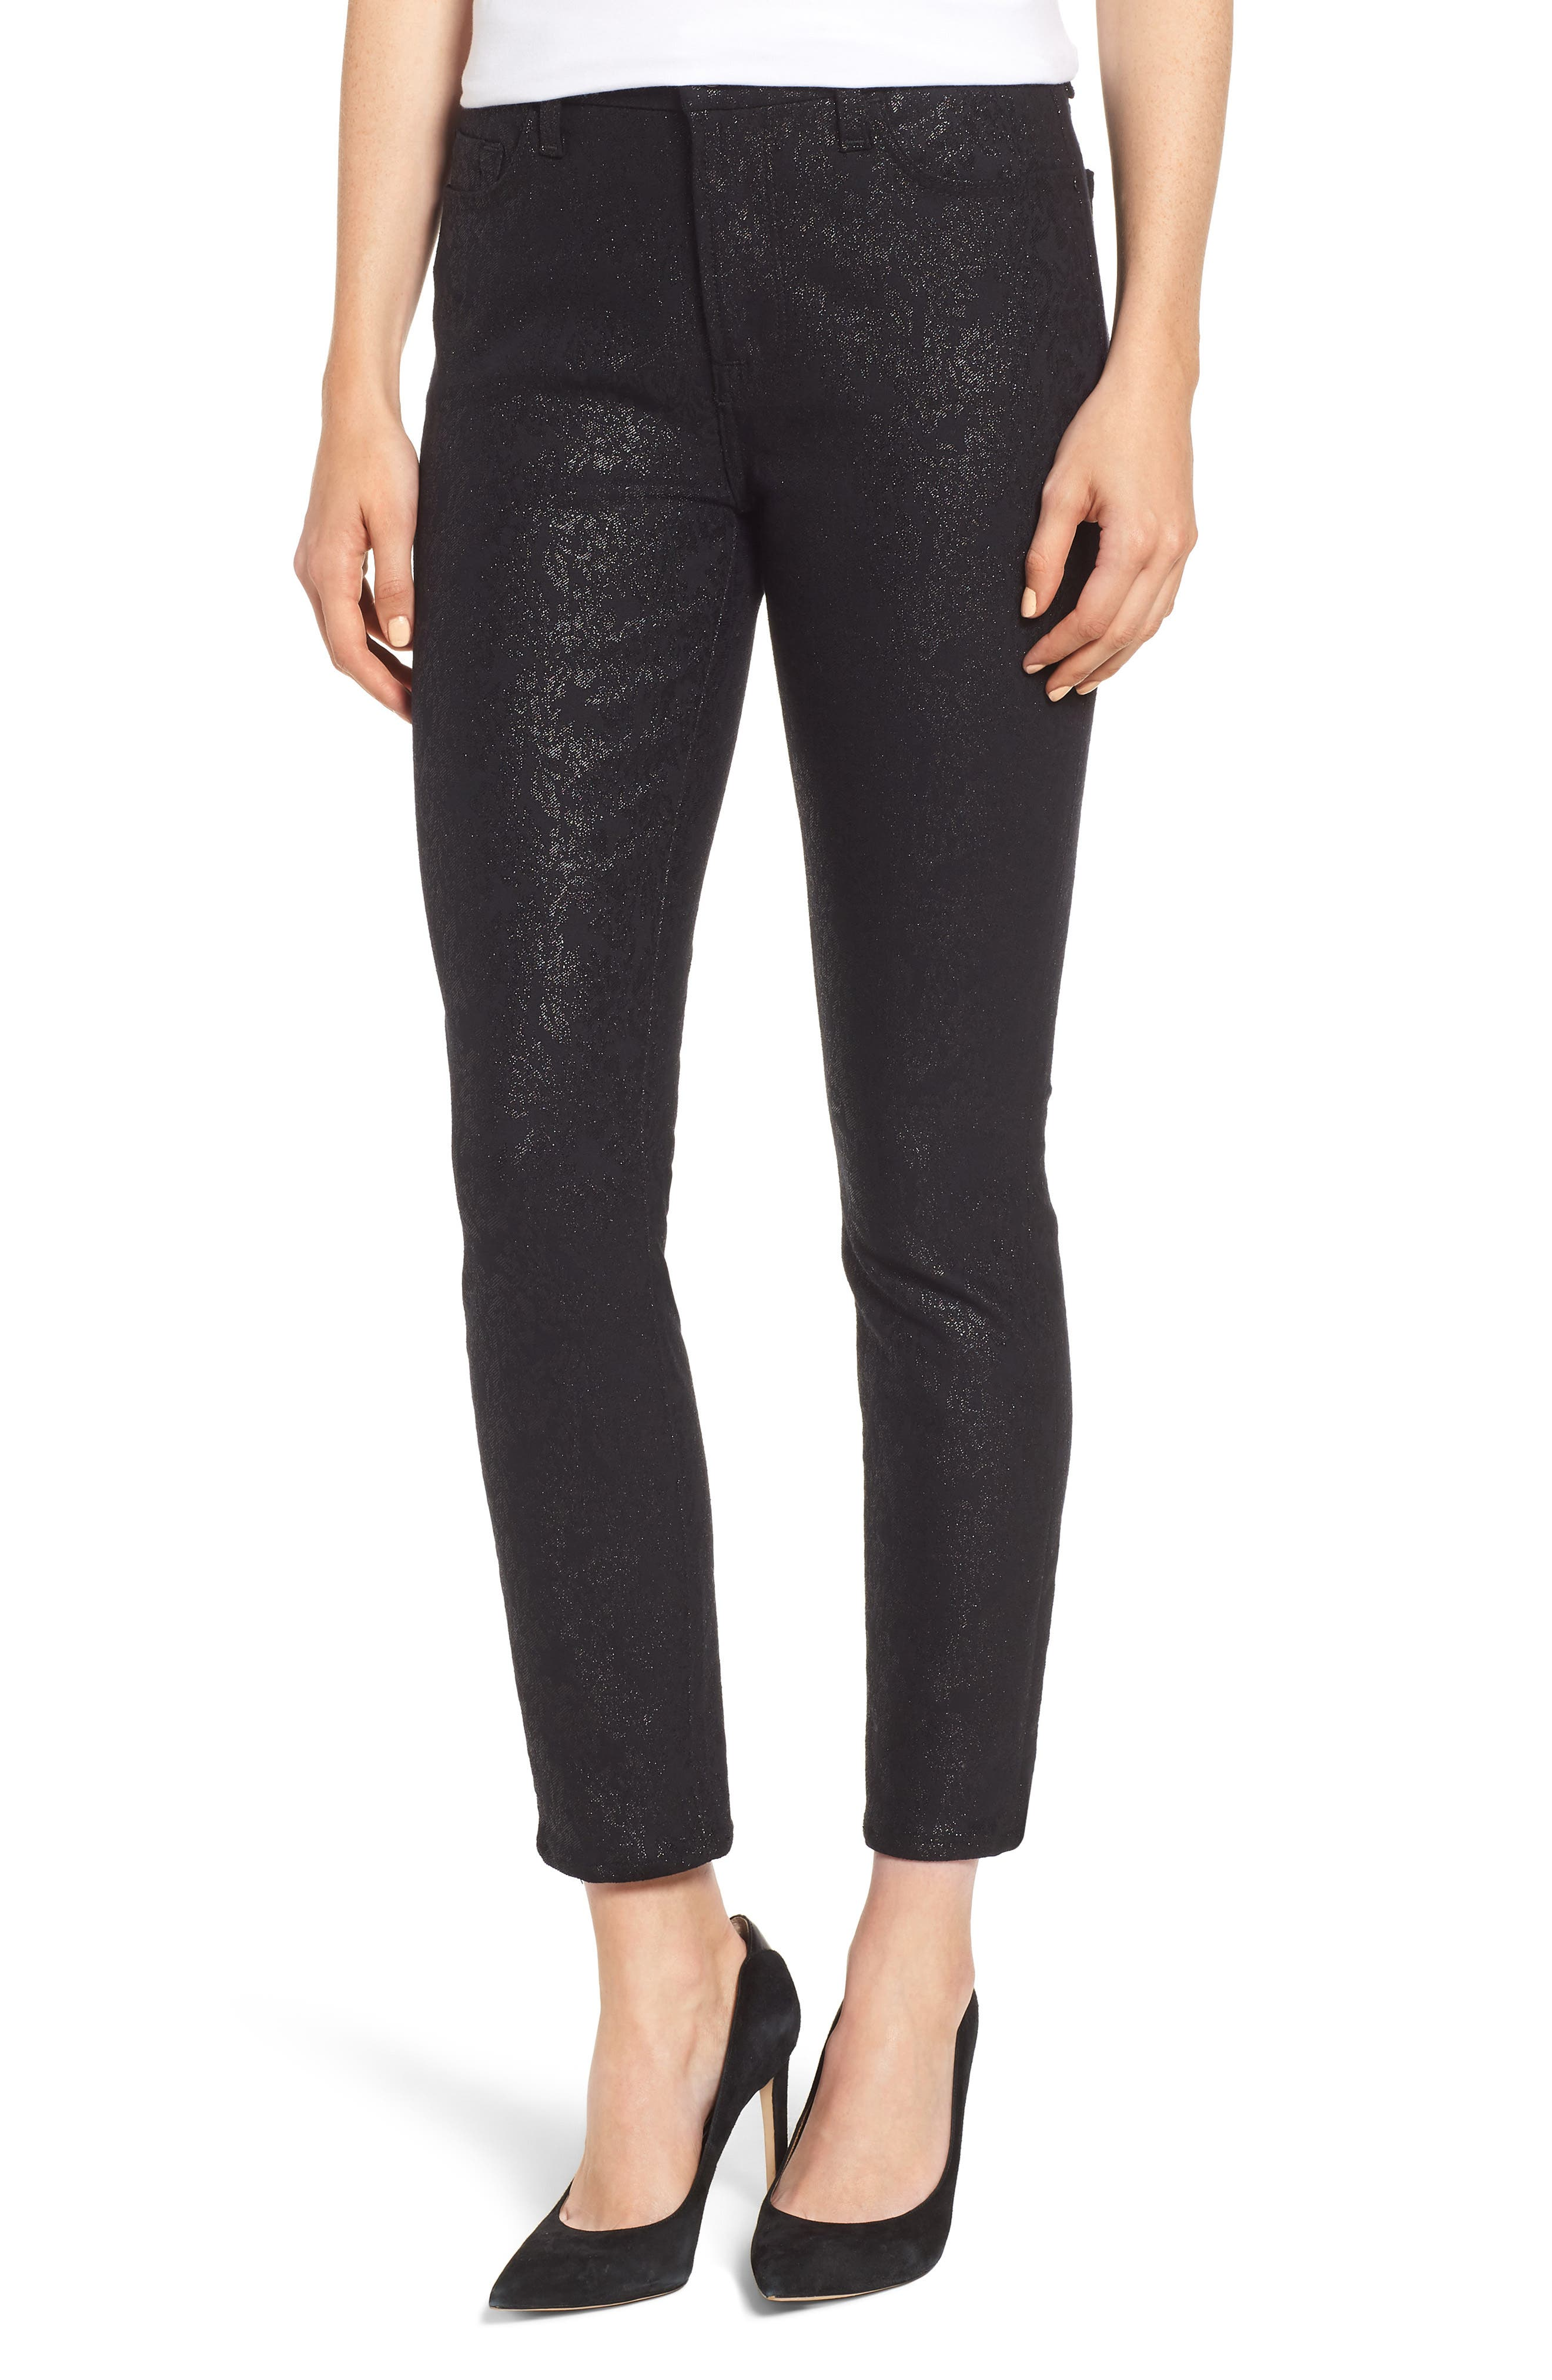 JEN7 BY 7 FOR ALL MANKIND Floral Metallic Ankle Skinny Jeans, Main, color, BLACK